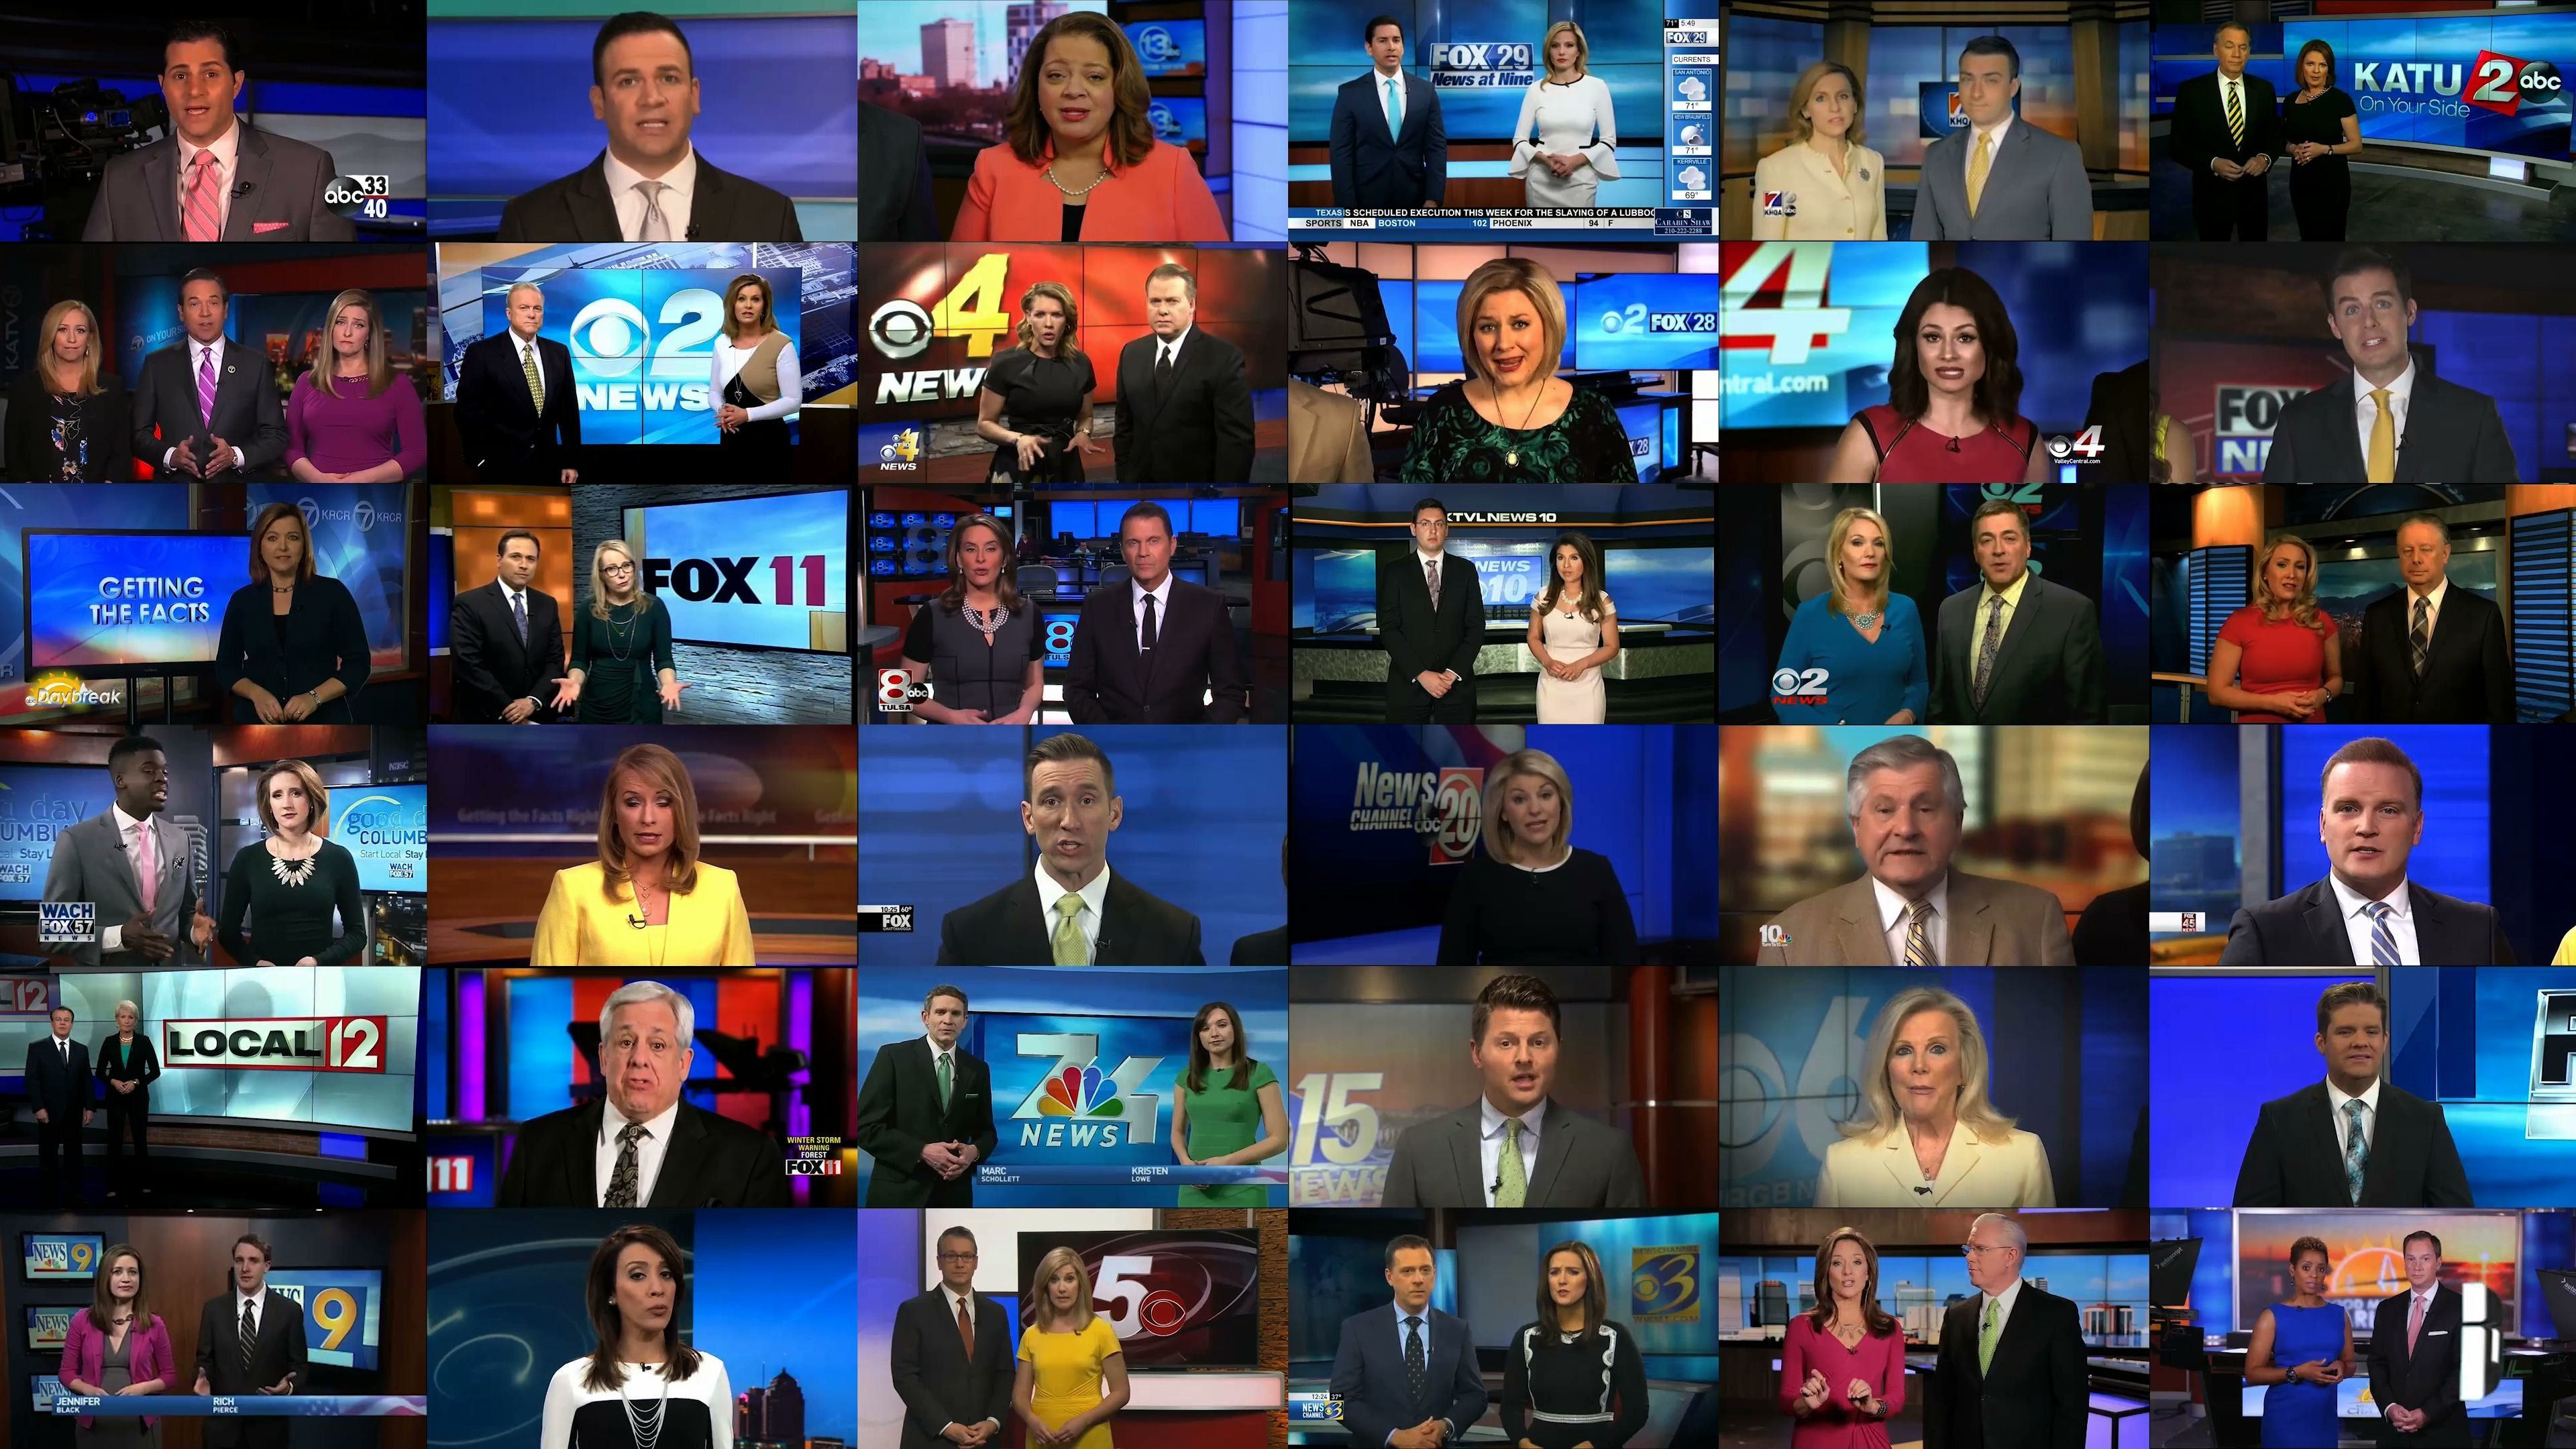 How To Hit Sinclair Where It Hurts, According To An Anonymous Sinclair Anchor